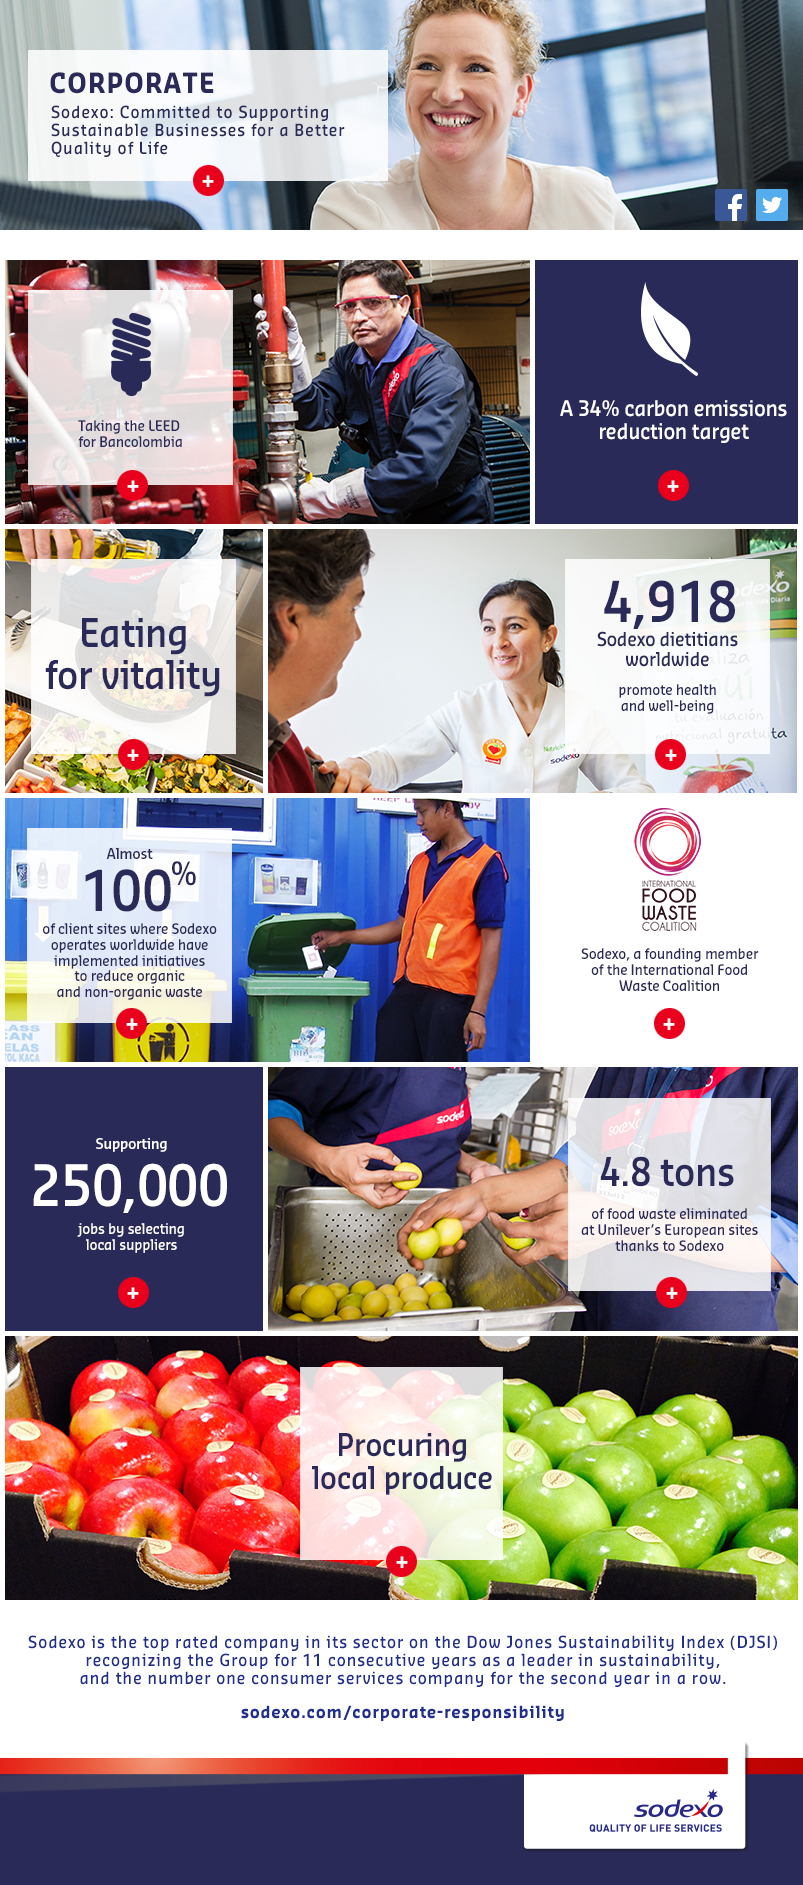 Sodexo: Committed to Supporting Sustainable Business